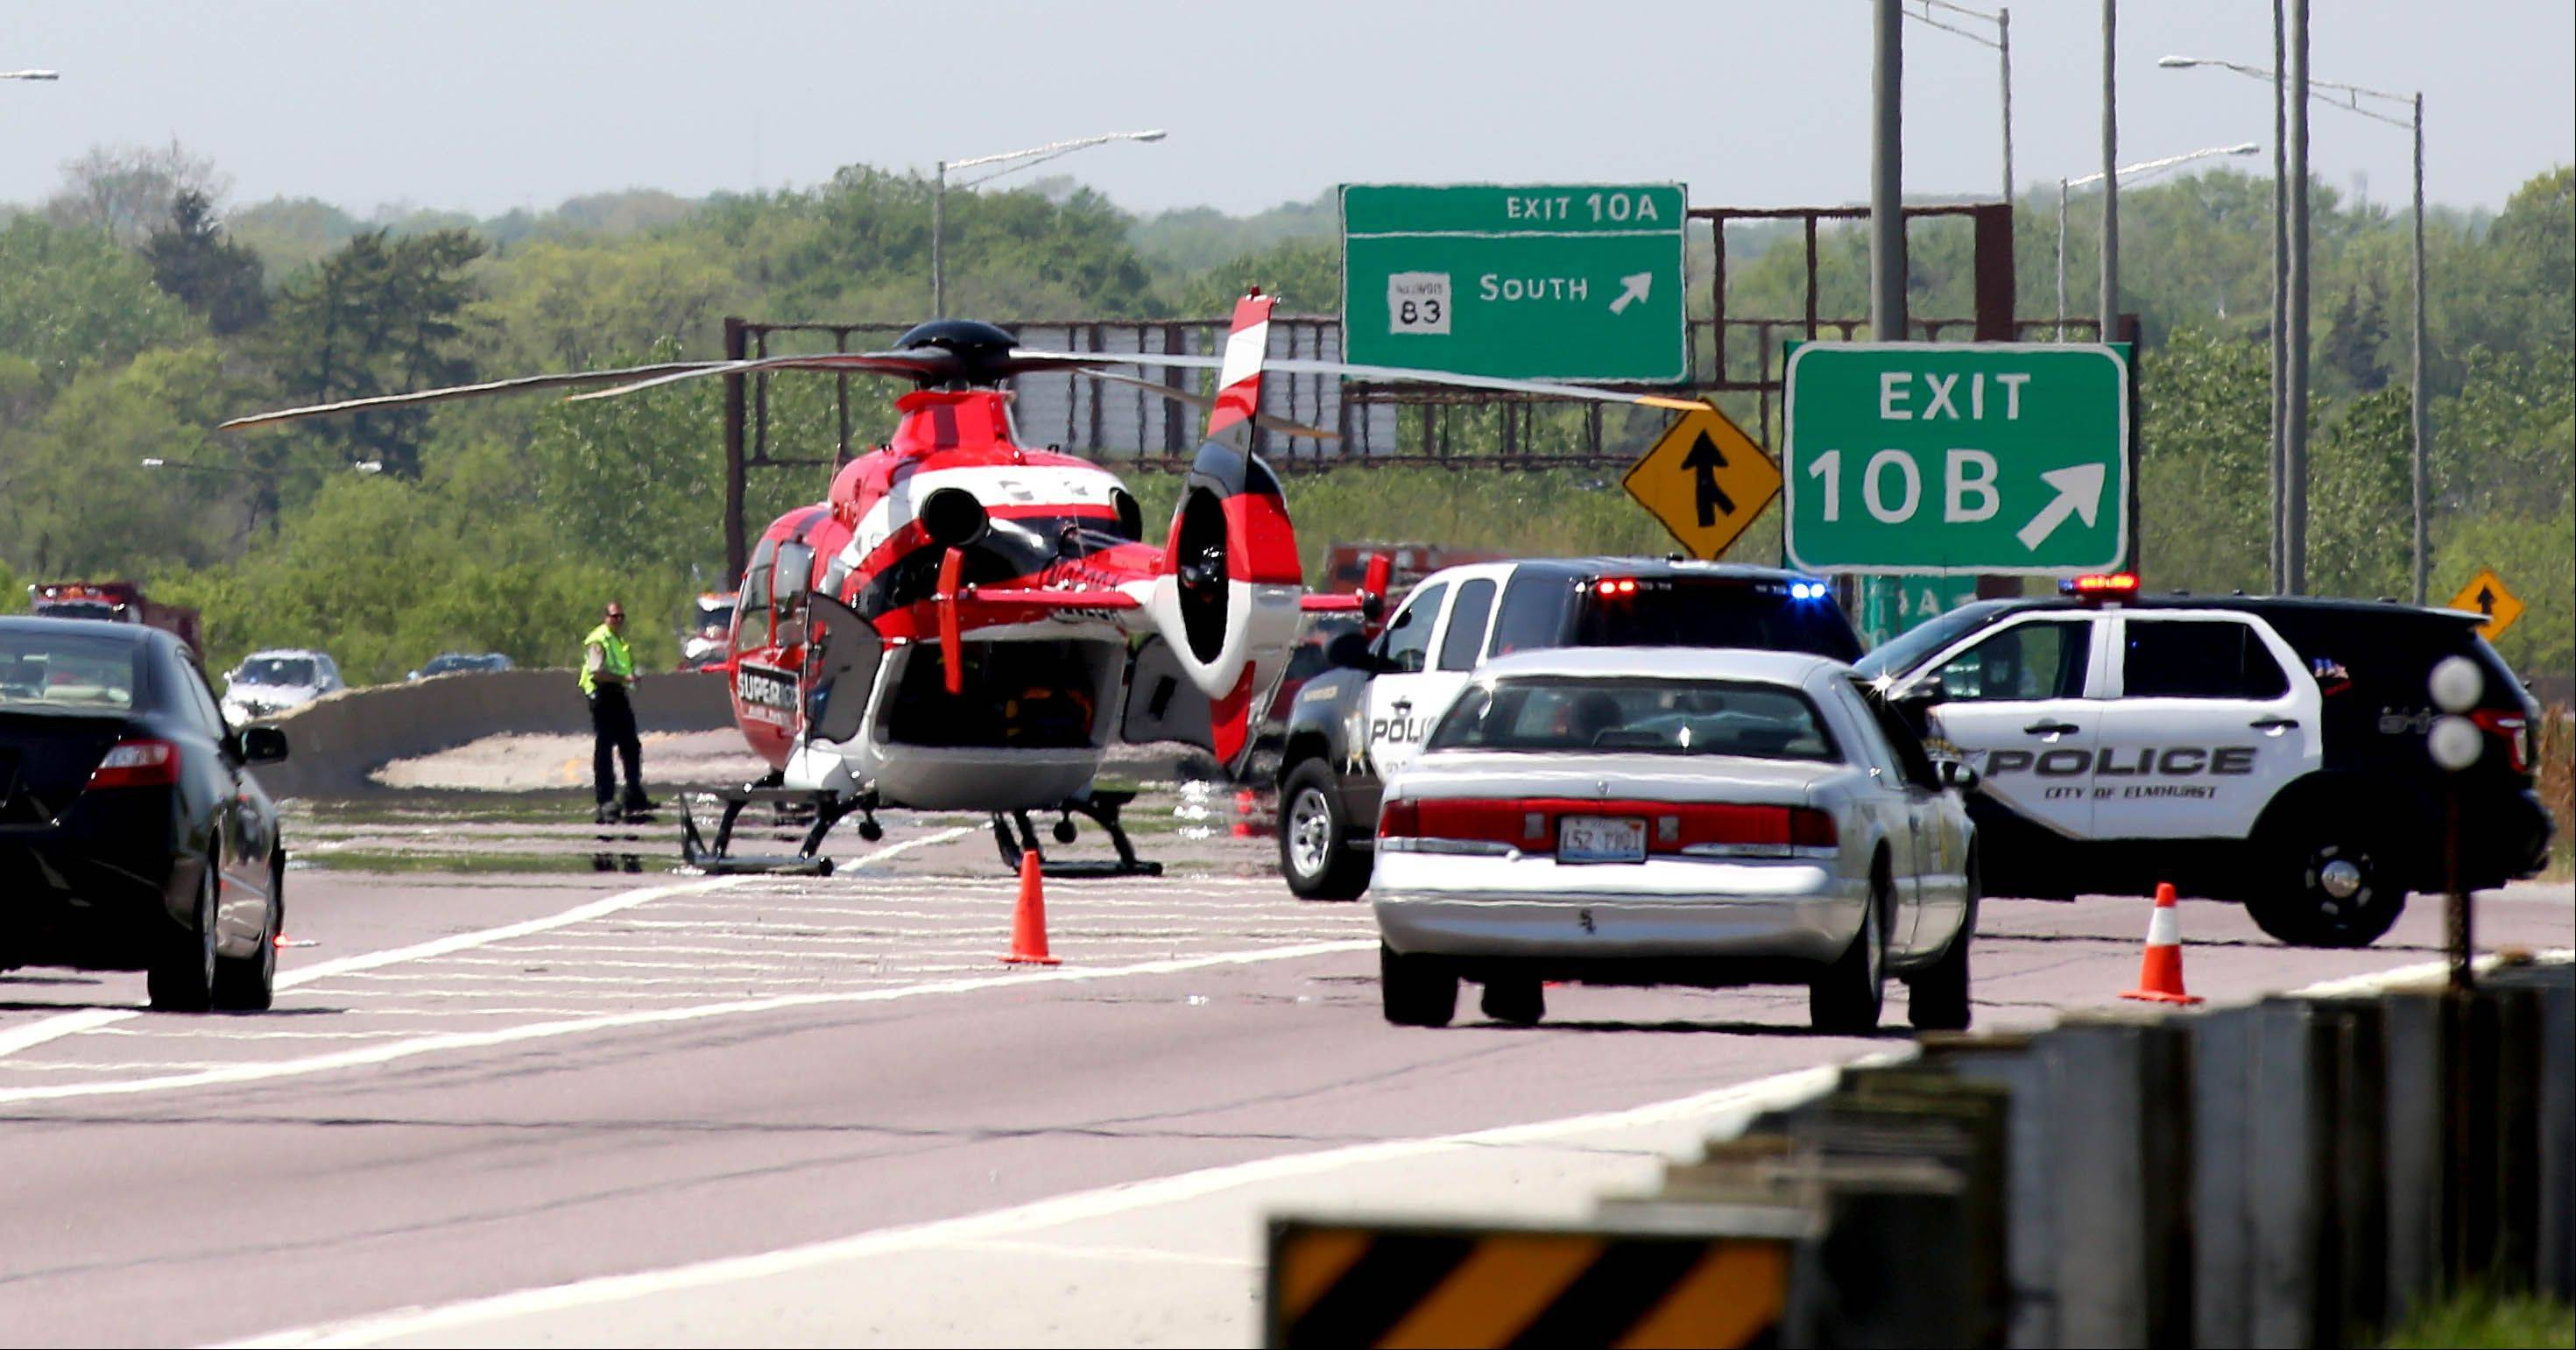 A medical helicopter lands Wednesday on I-290 at Route 83 after a semitrailer truck overturned and trapped the driver inside.